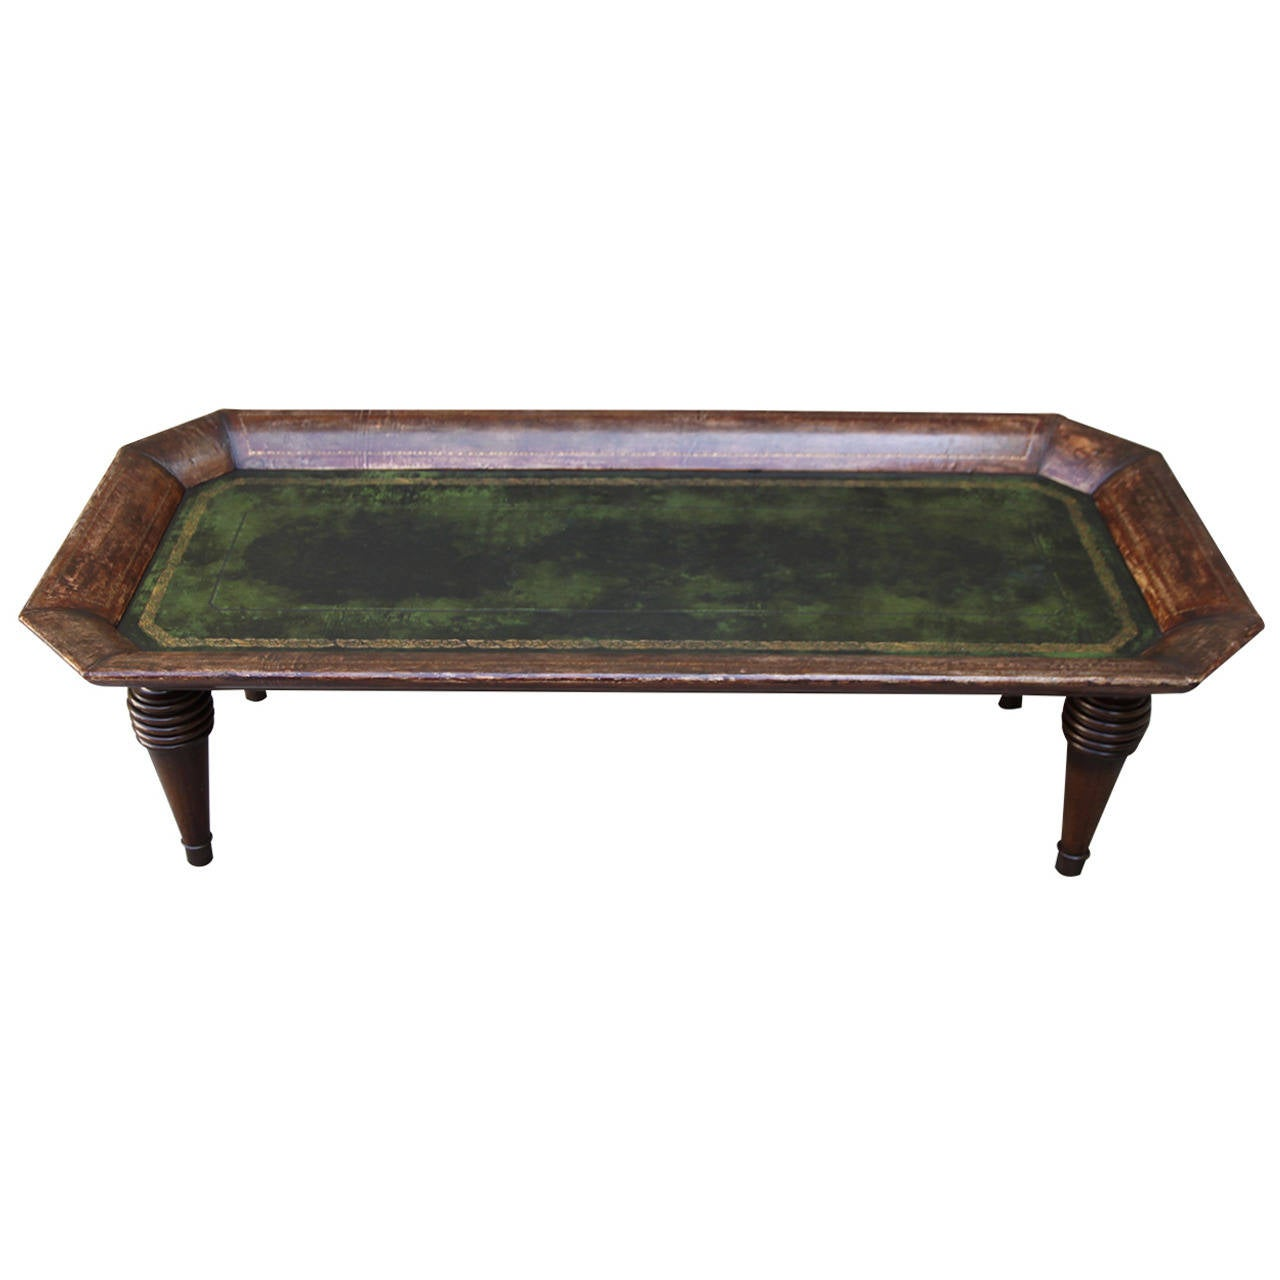 English gold embossed leather coffee table at 1stdibs Coffee table with leather top